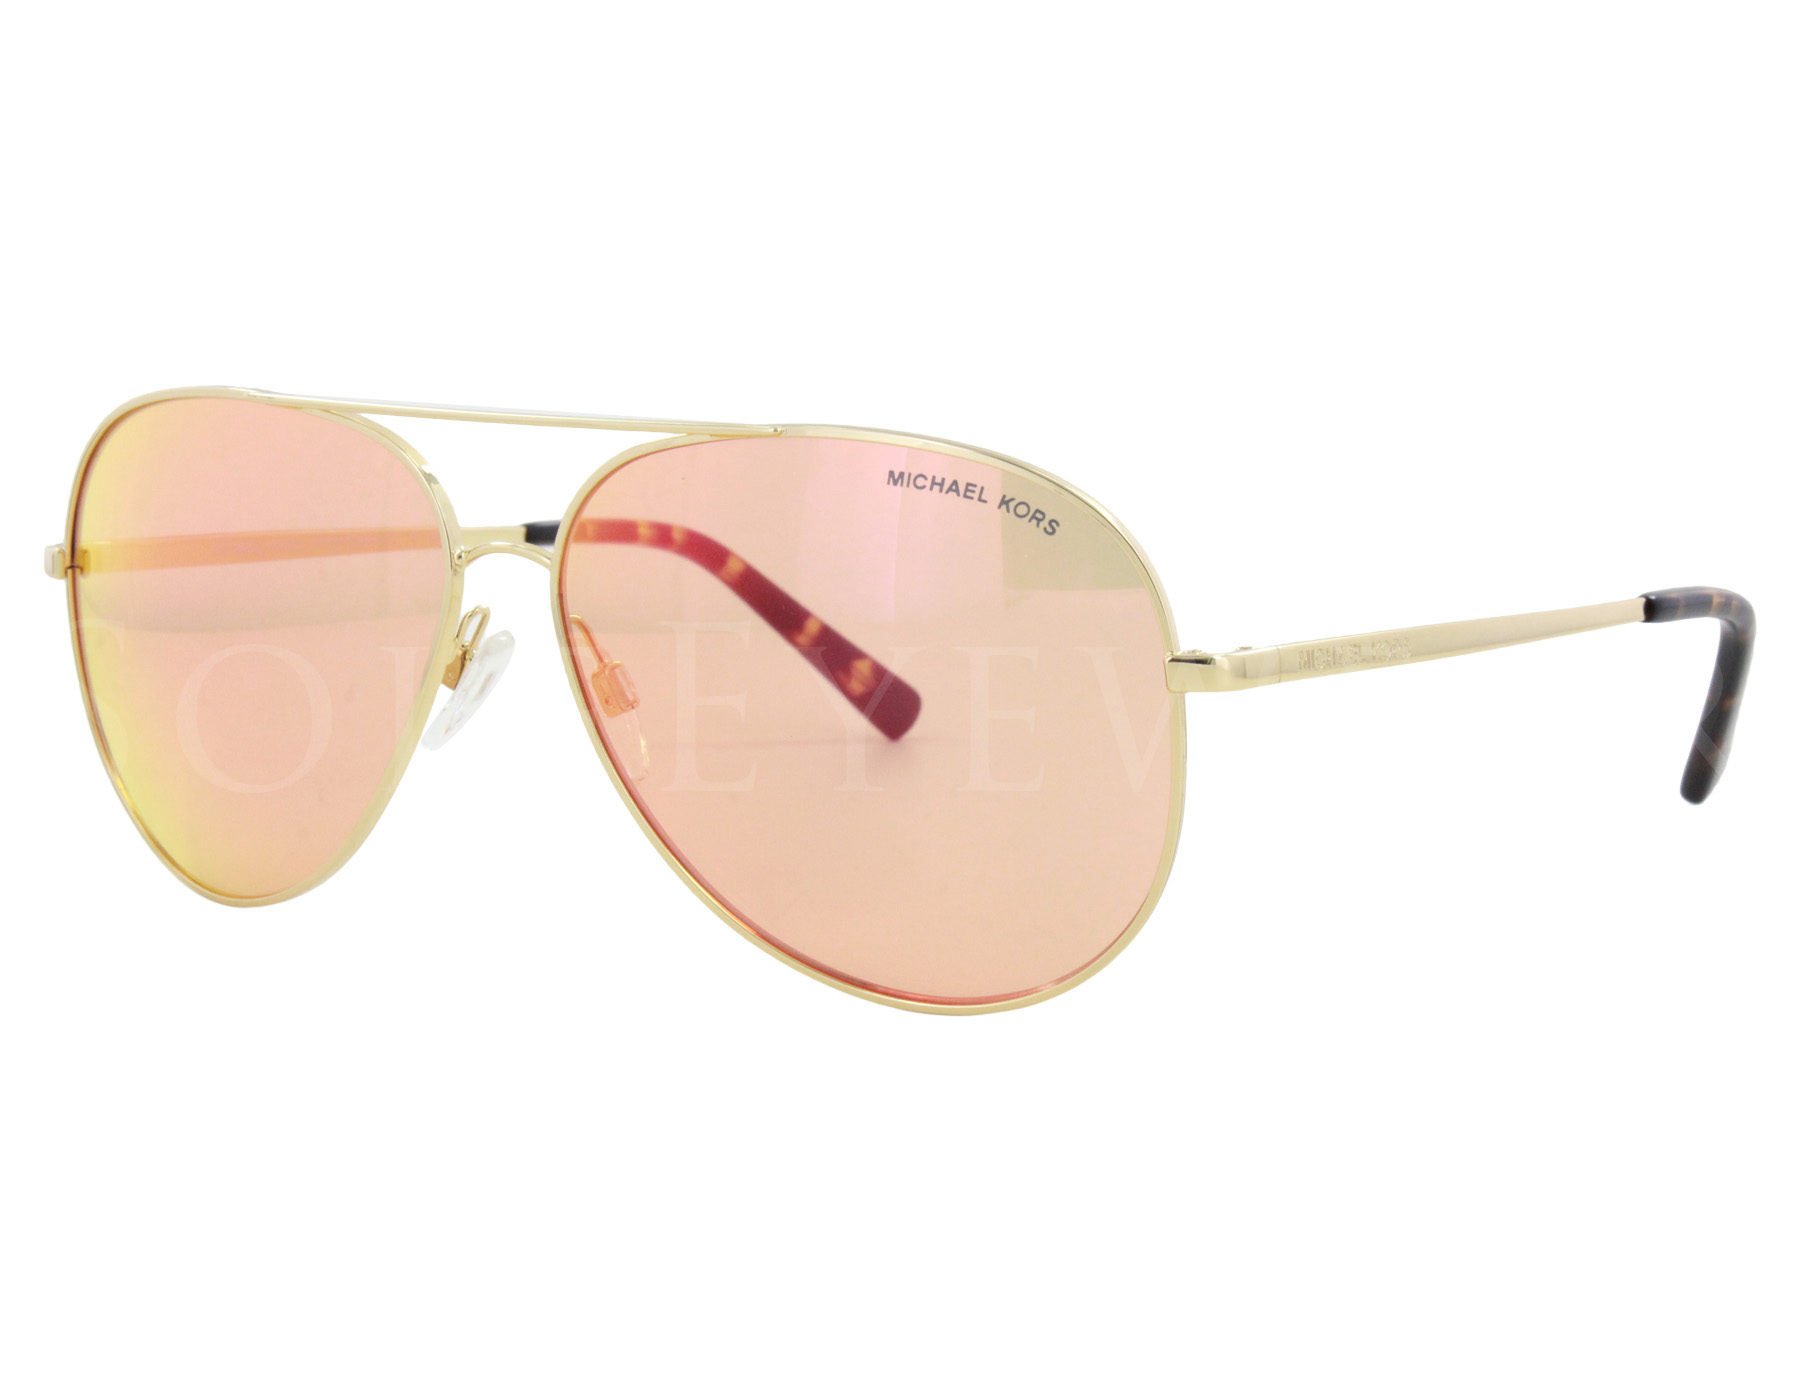 9a42bf4c8a980 Details about NEW Michael Kors MK5016 1024F6 Kendall I Gold   Orange Flash  Sunglasses